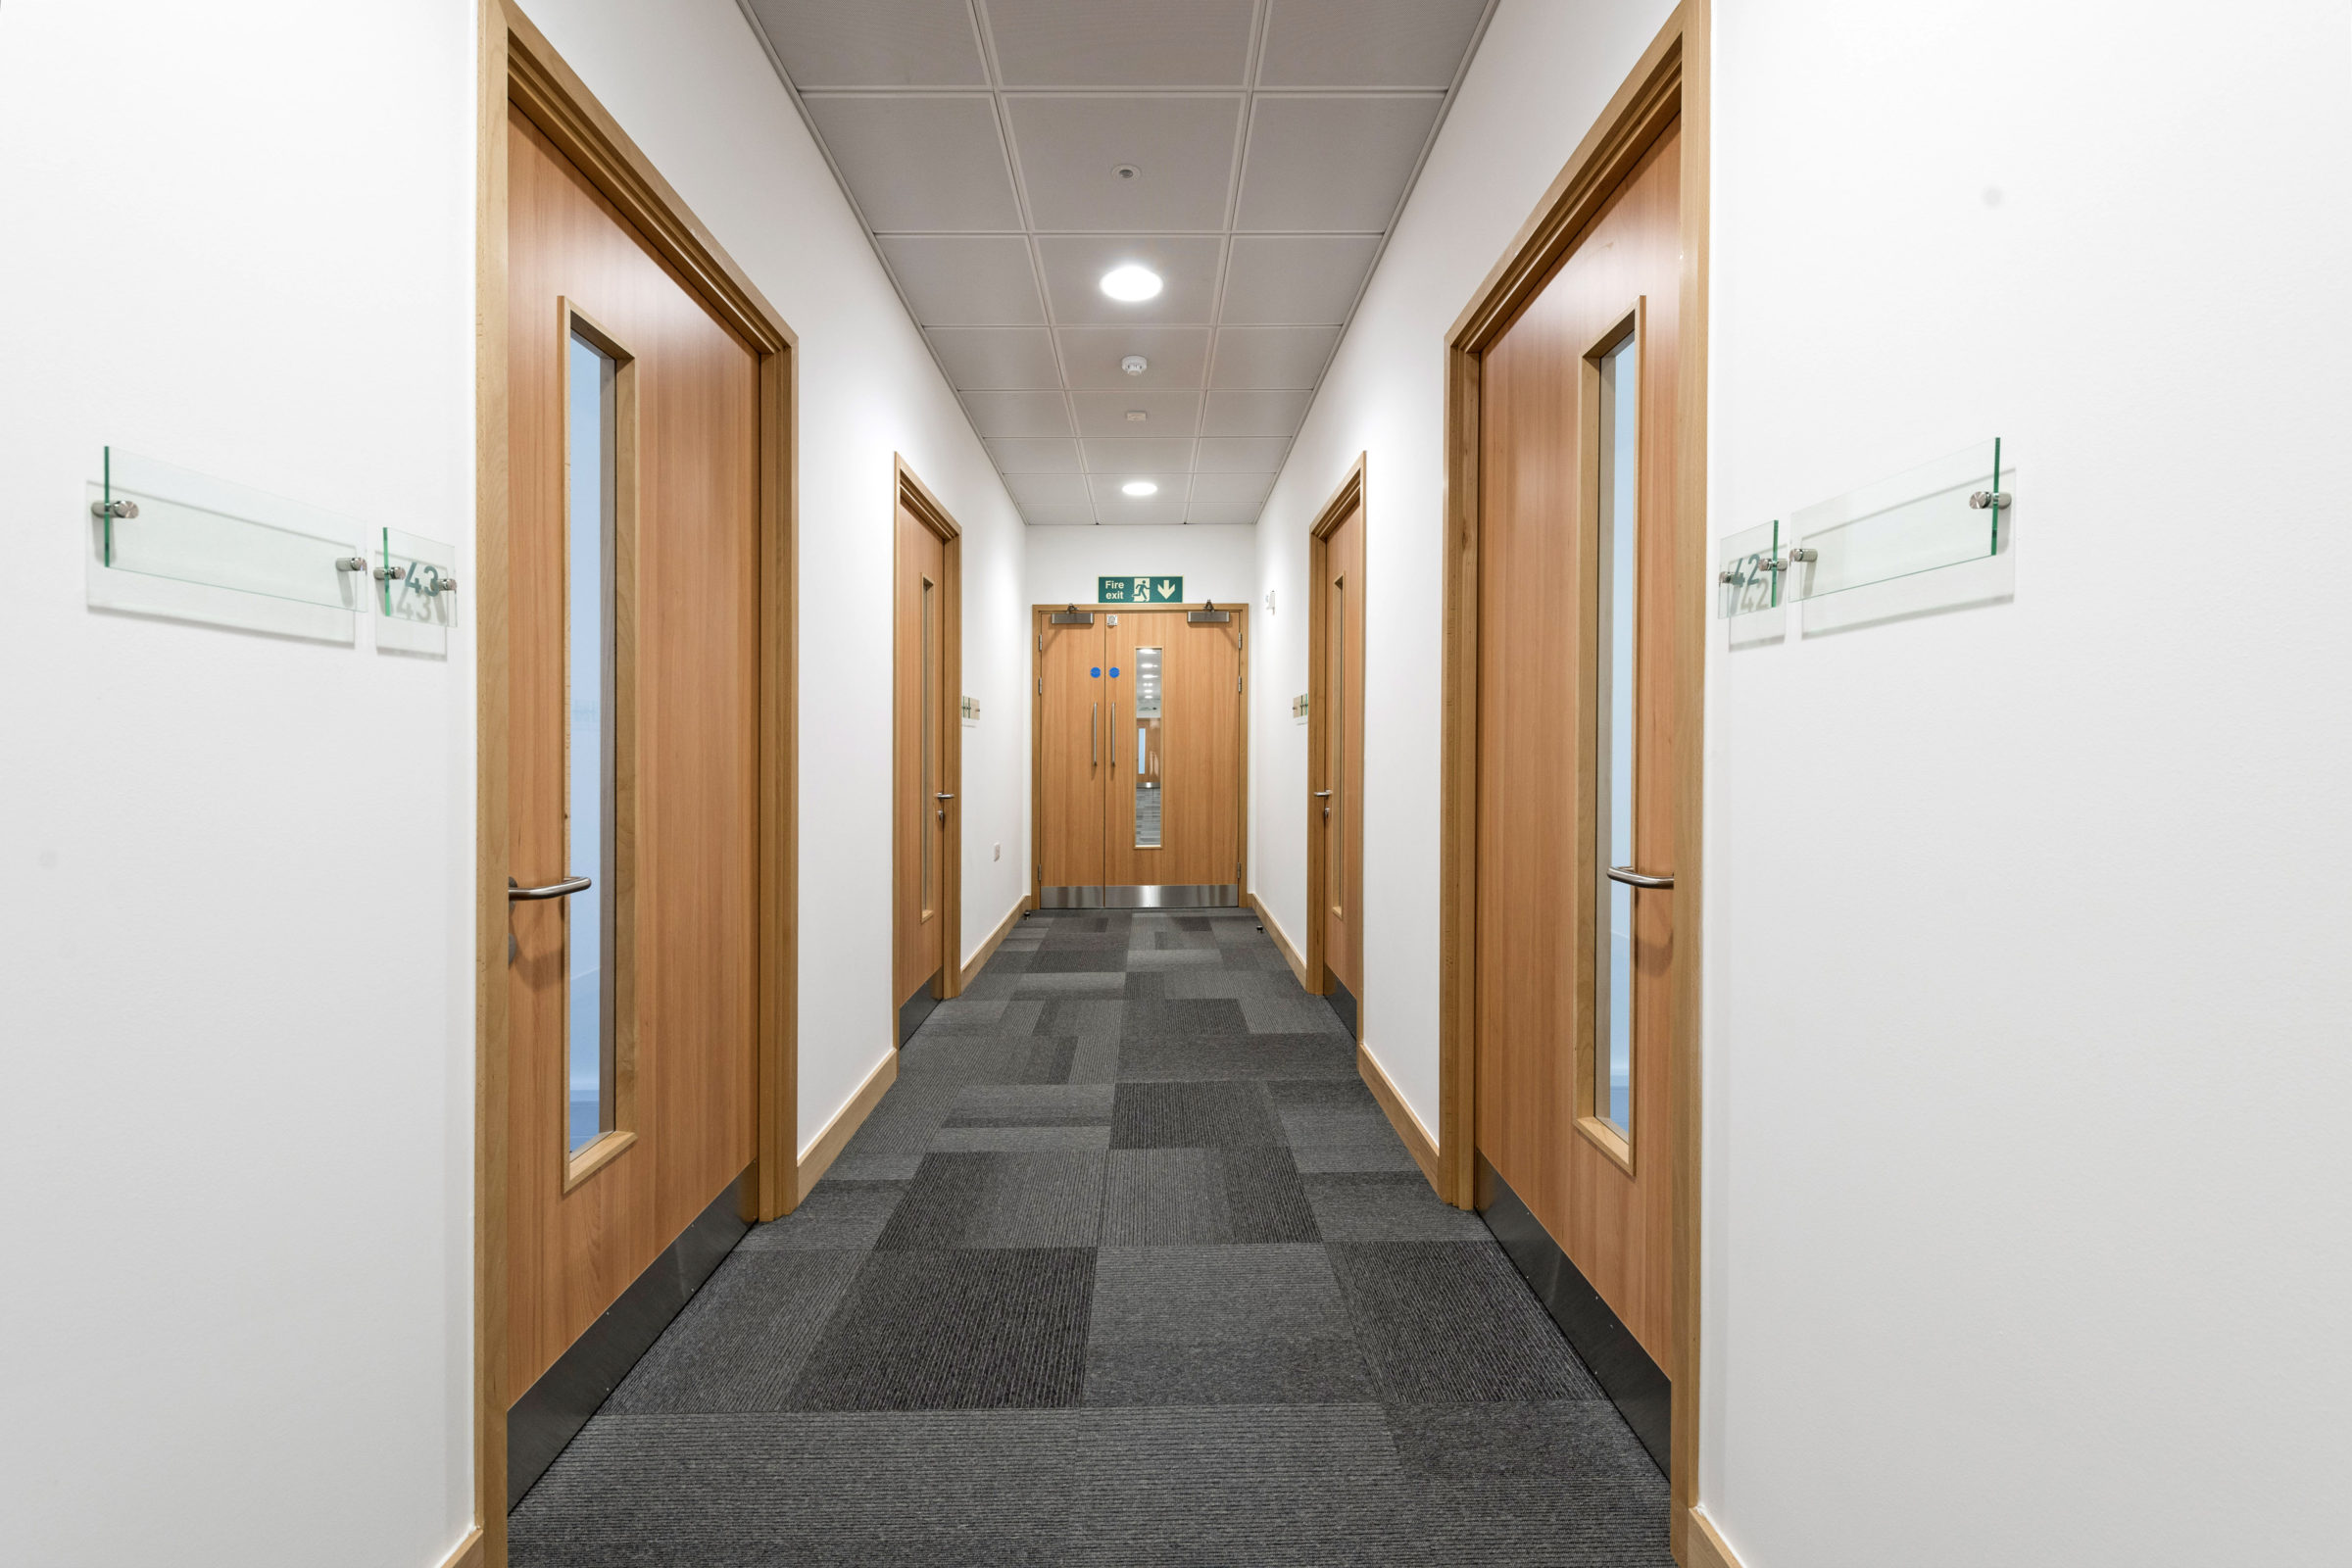 Fire doors supplied and installed at Fareham Innovation Centre